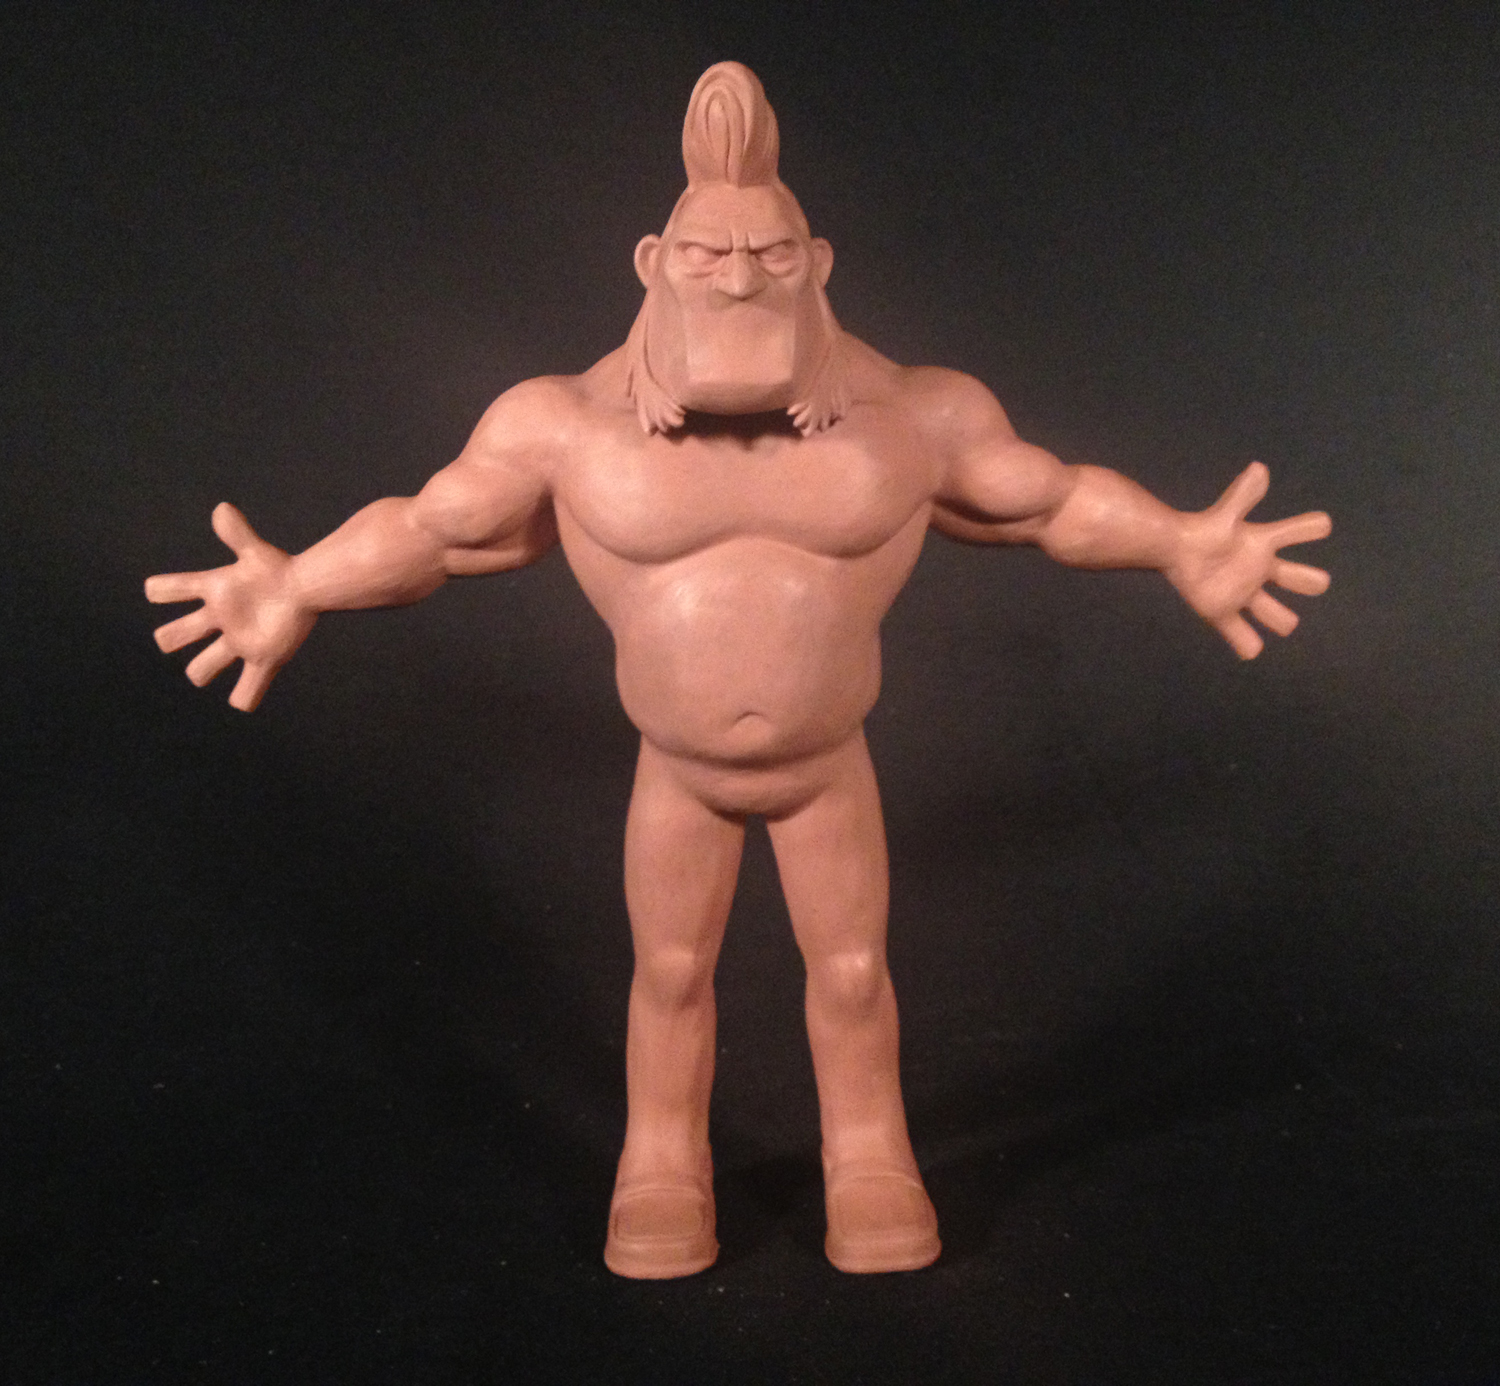 """Brad,""  Ub  ermansion . Adult Swim pilot, Stoopid Buddy Stoodios 2013. Height: 9 inches, chavant."